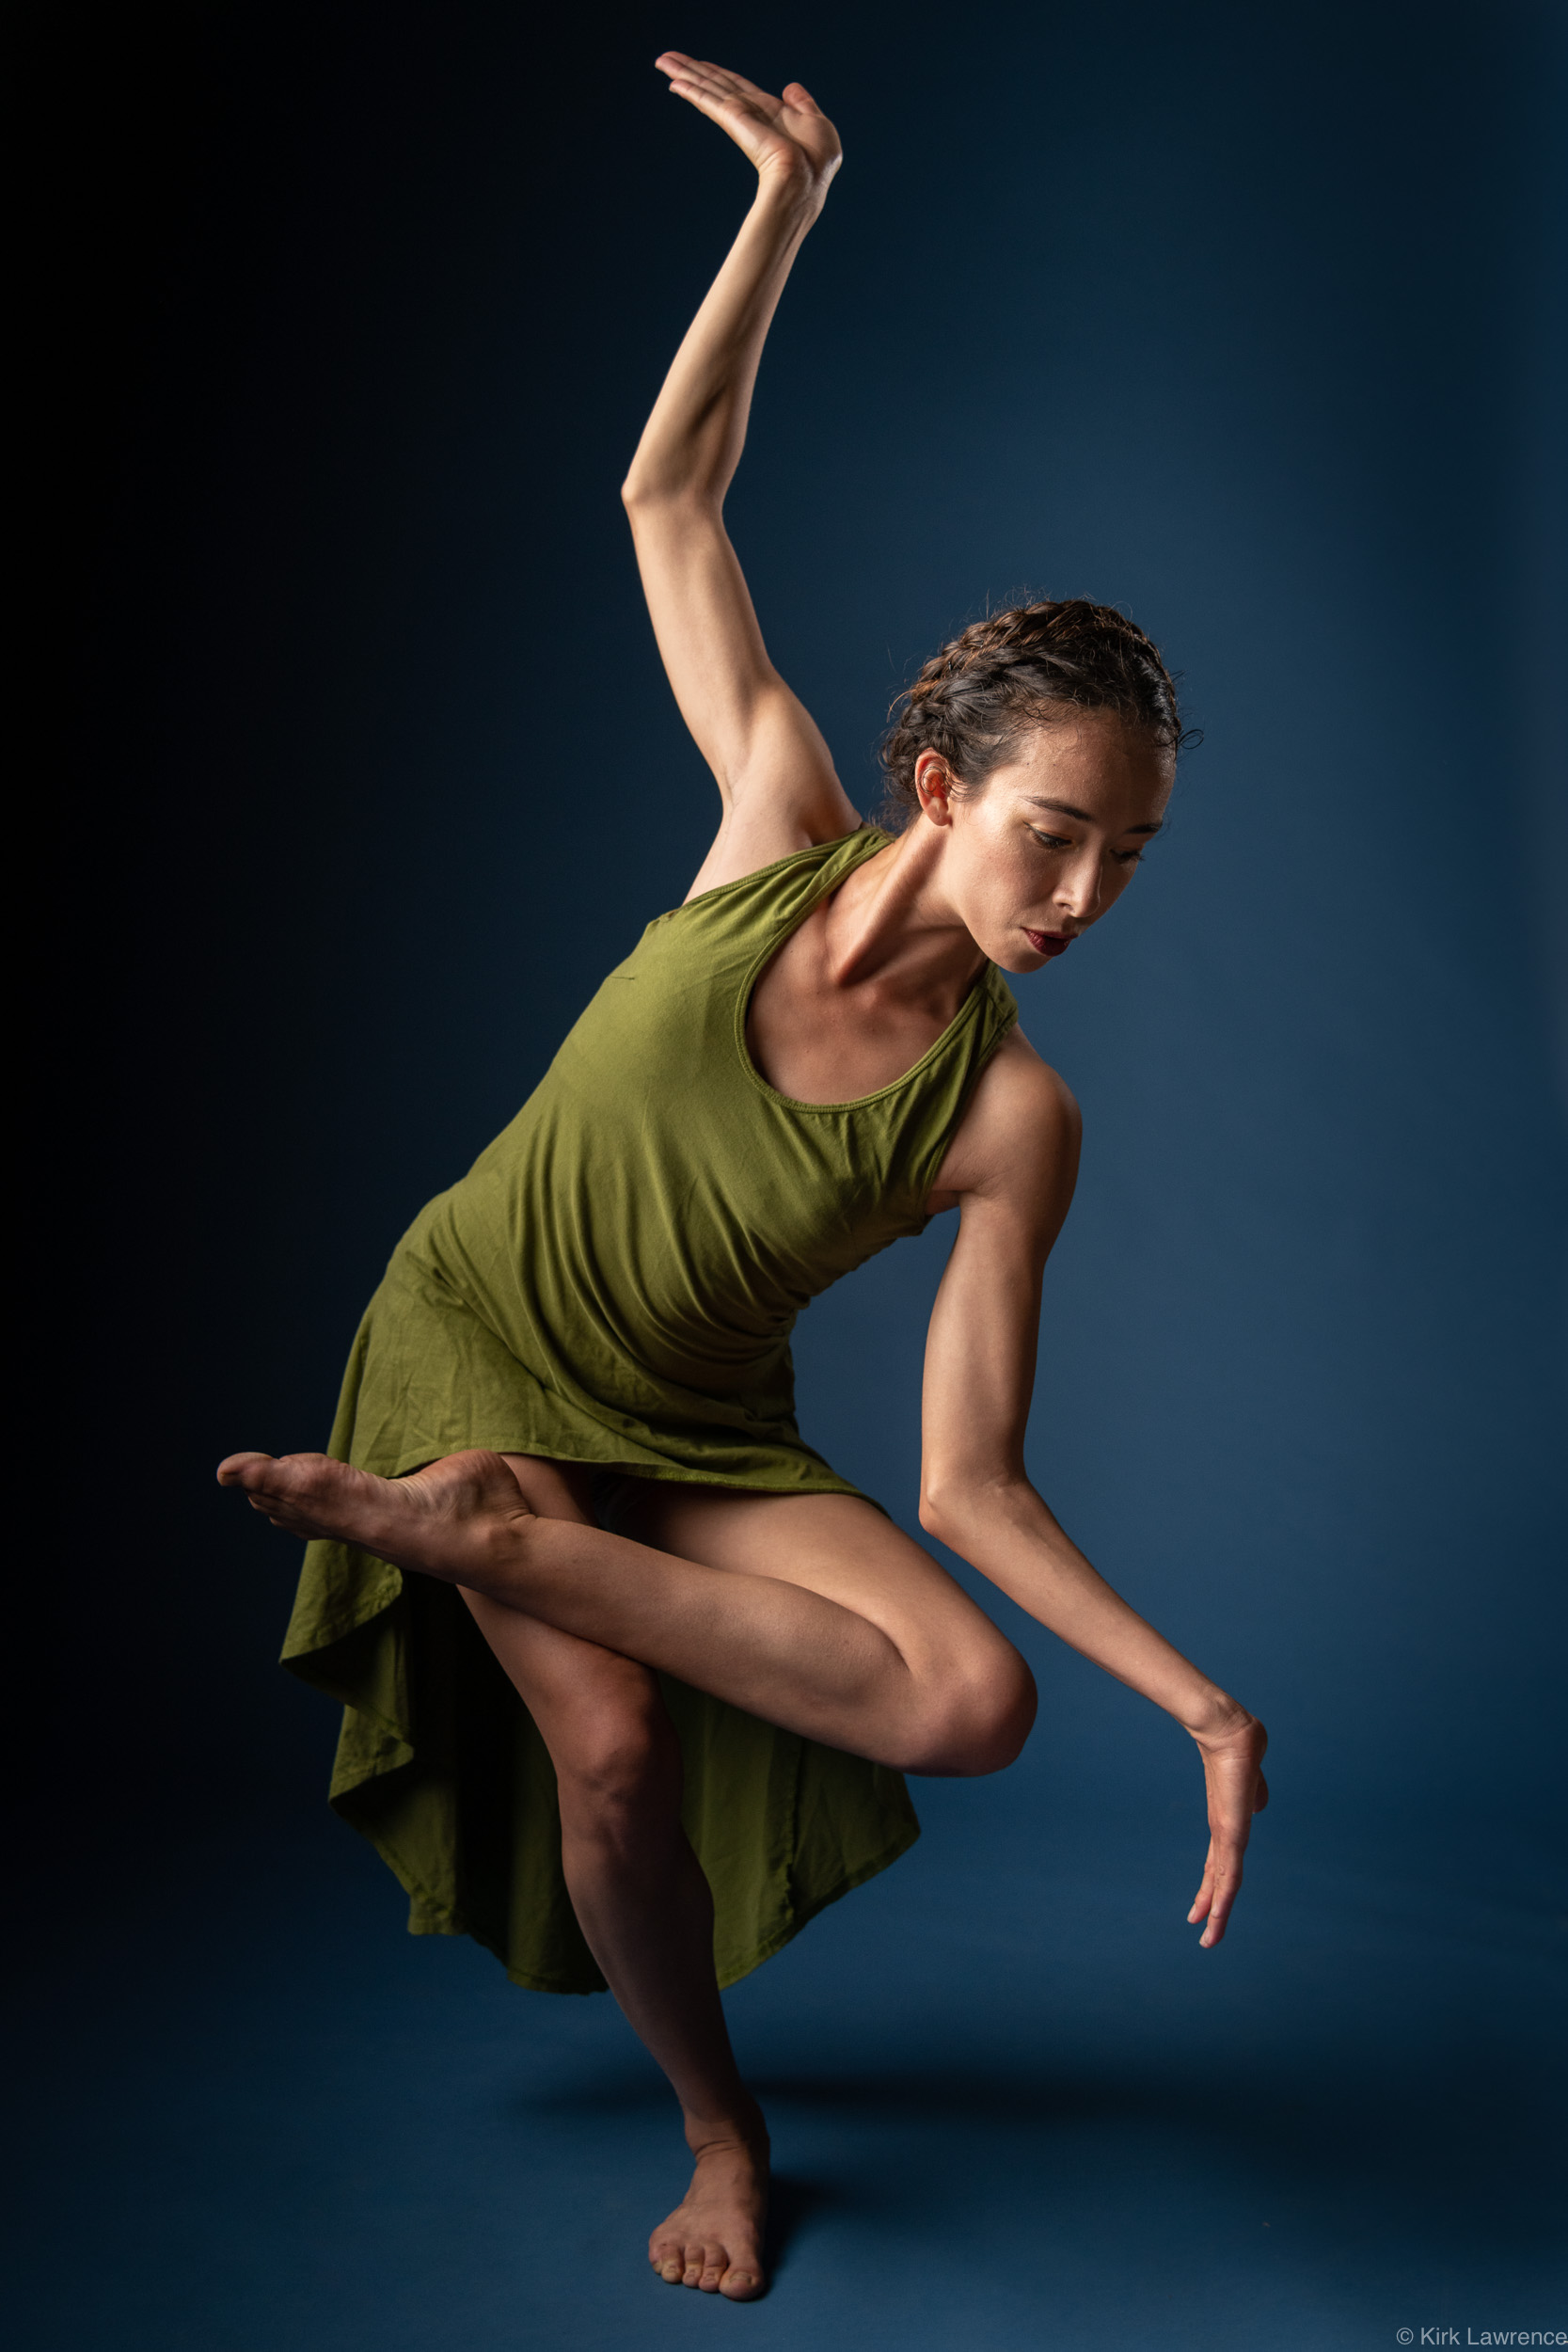 modern_dancer_balancing_green_dress.jpg